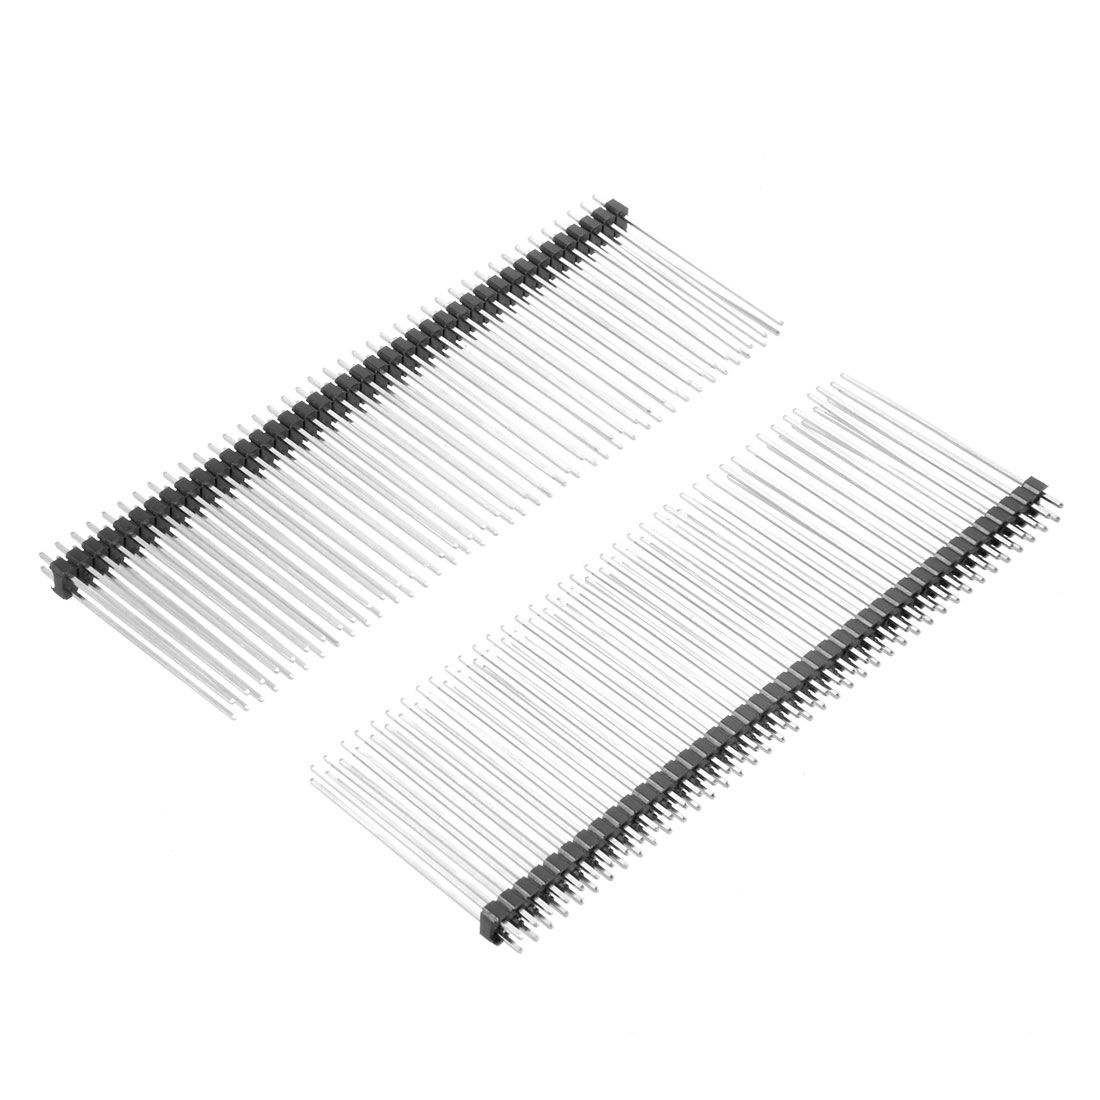 5pcs 2 54mm Pitch 40 Pin 40mm Length 2 Row Straight